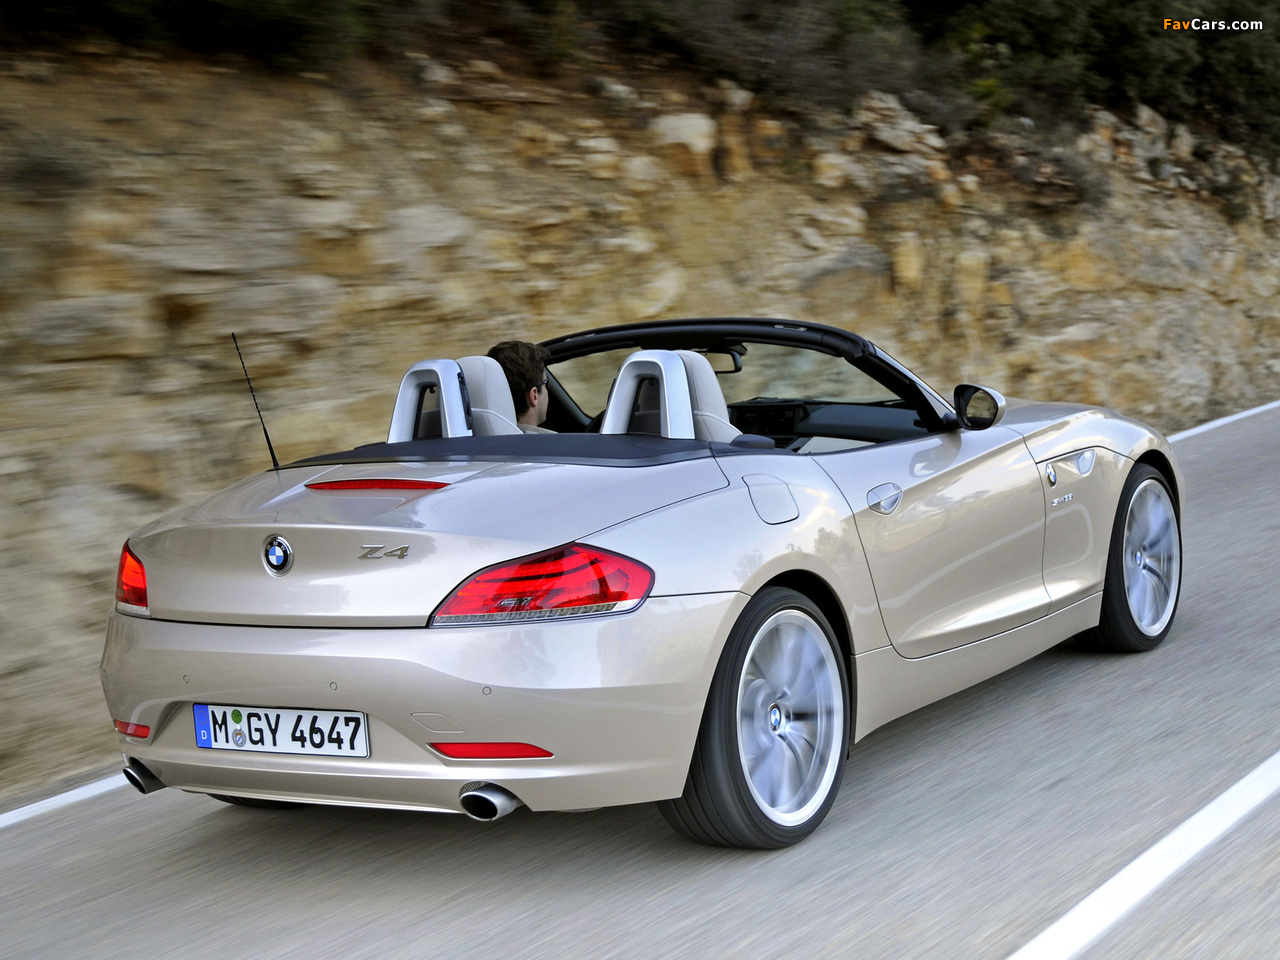 BMW Z4 sDrive35i Roadster (E89) 2009 wallpapers (1280 x 960)